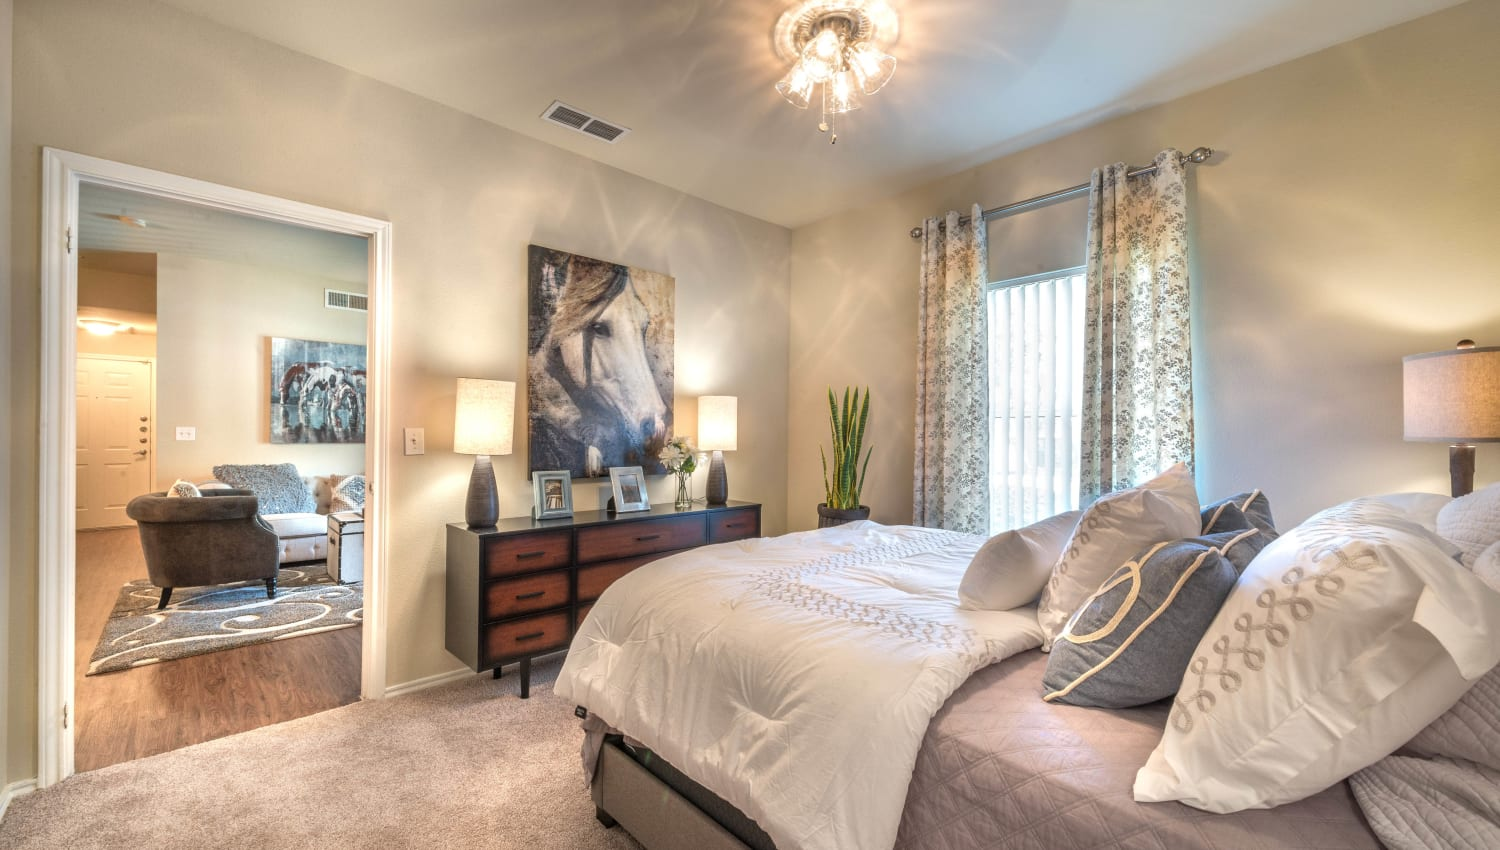 Ceiling fan and plush carpeting in a model home's master bedroom at The Ranch at Shadow Lake in Houston, Texas